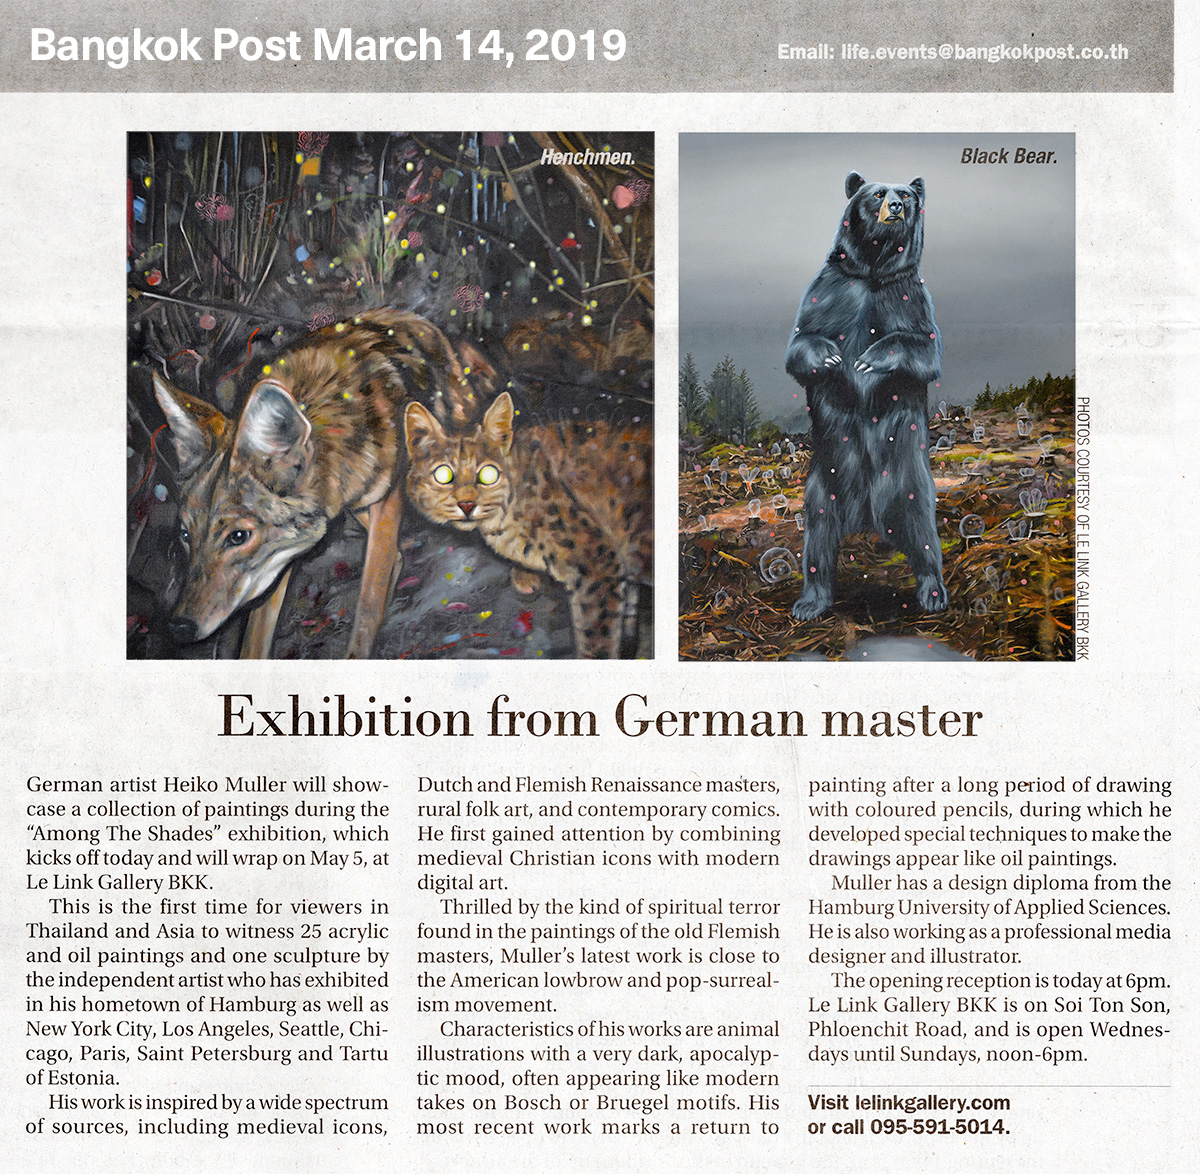 Bangkok Post, March 14, 2019 – Exhibition of German master Heiko Müller